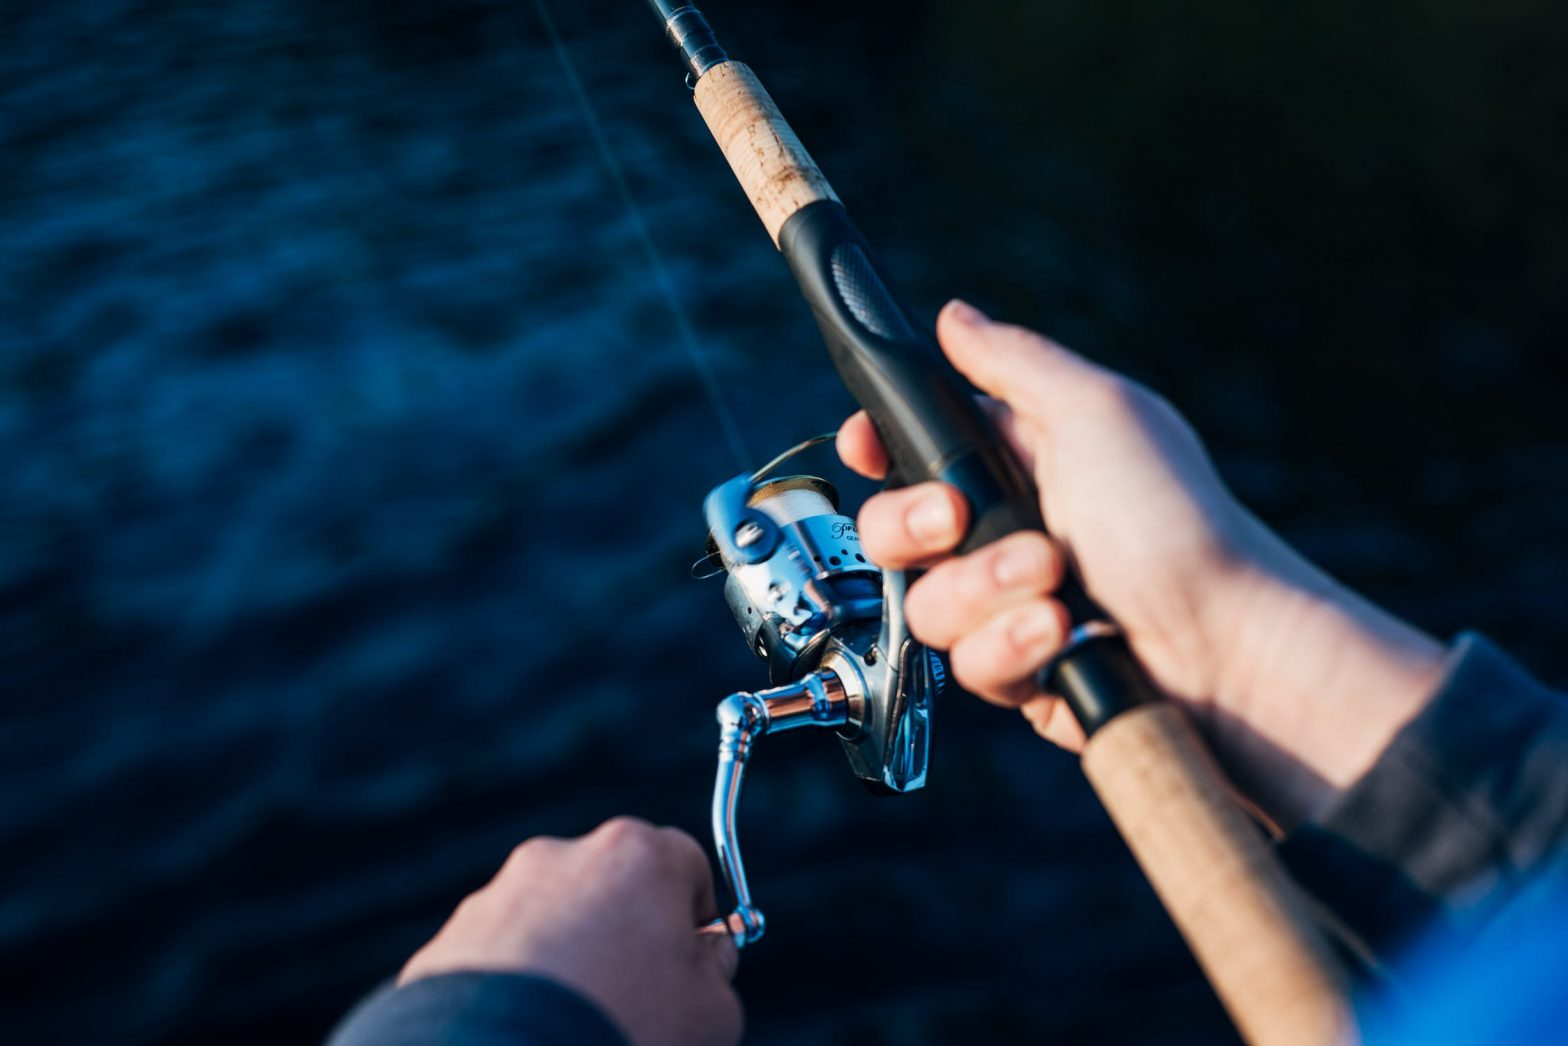 Close up of rod and reel as person fishes into deep blue waters.